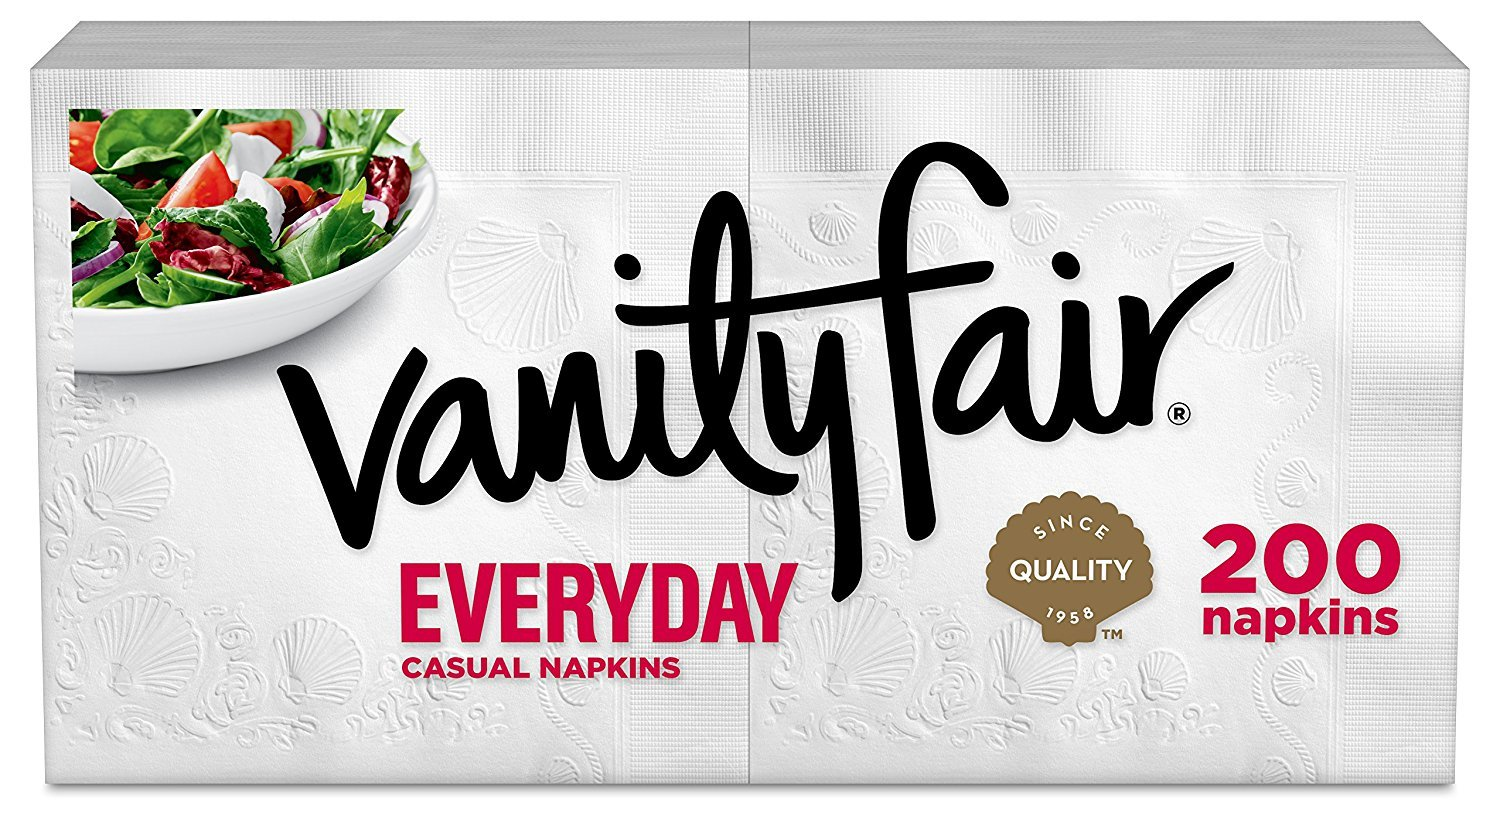 Vanity Fair Everyday Napkins, (Packaging Design May Vary) (800 Count)